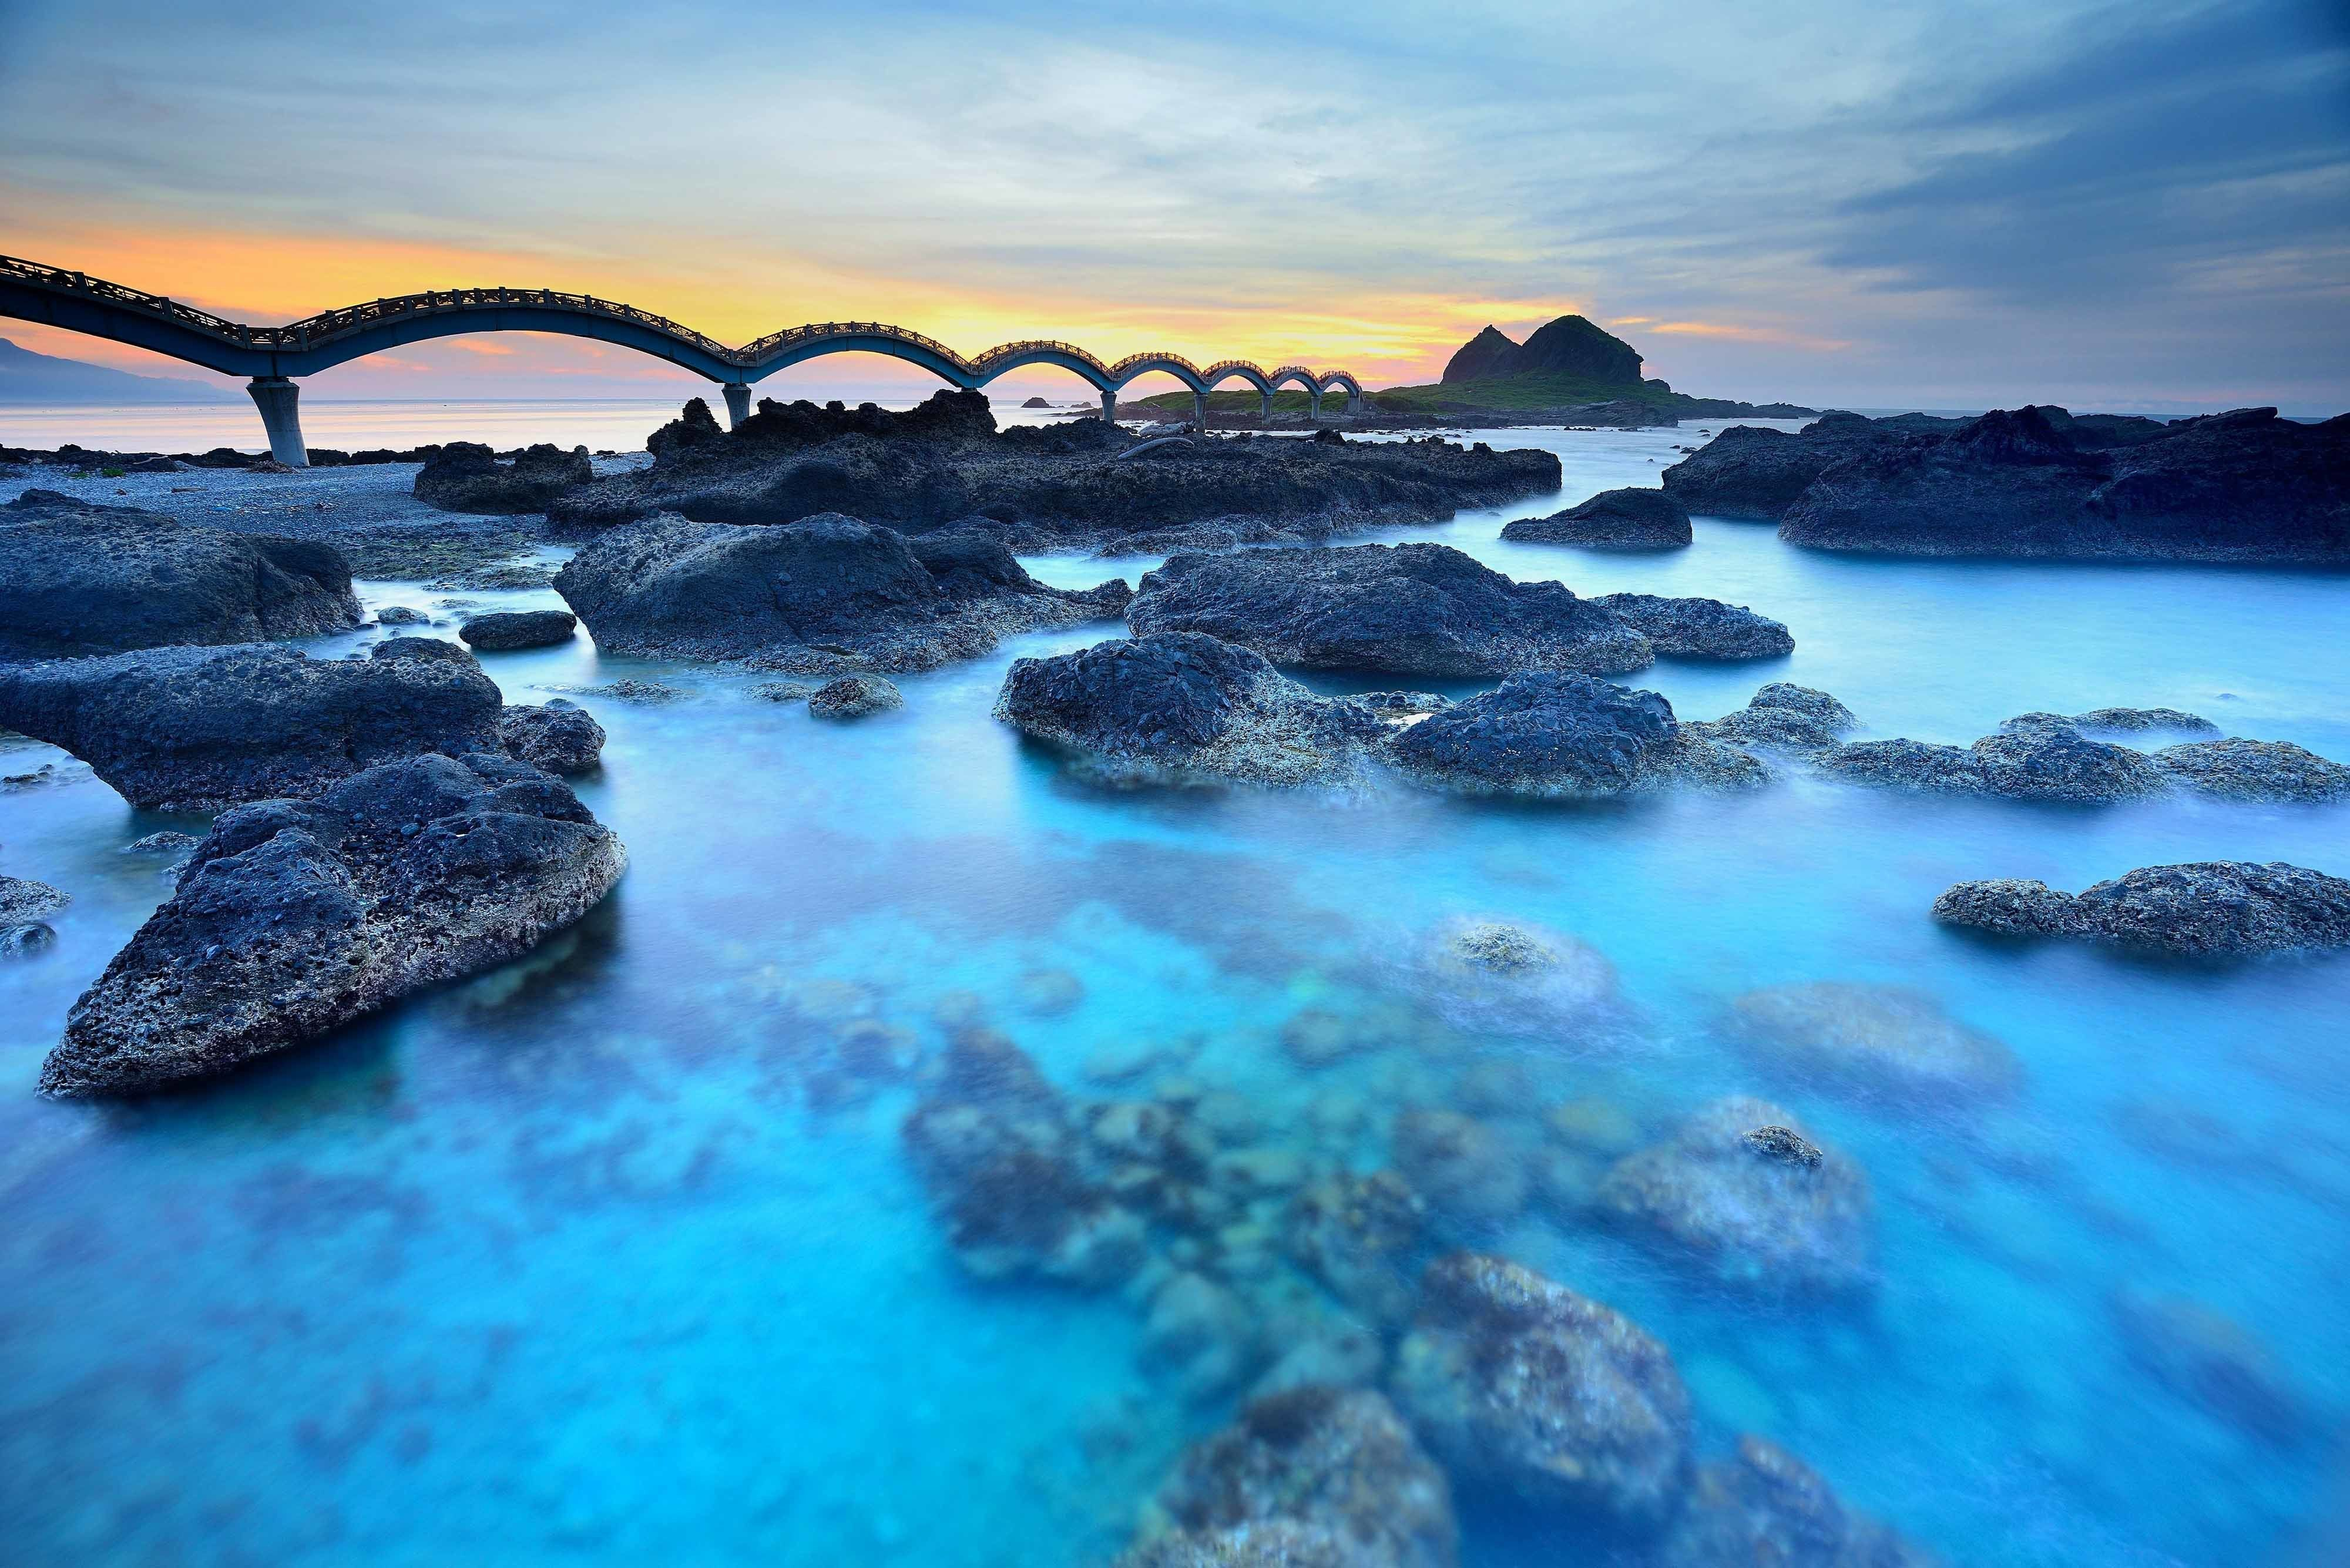 Top 5 Places To Visit In Asia During August   HuffPost The Top 10 Places To Visit In Asia This Year   Taitung is Taiwan rsquo s  secret wild card   says Lonely Planet